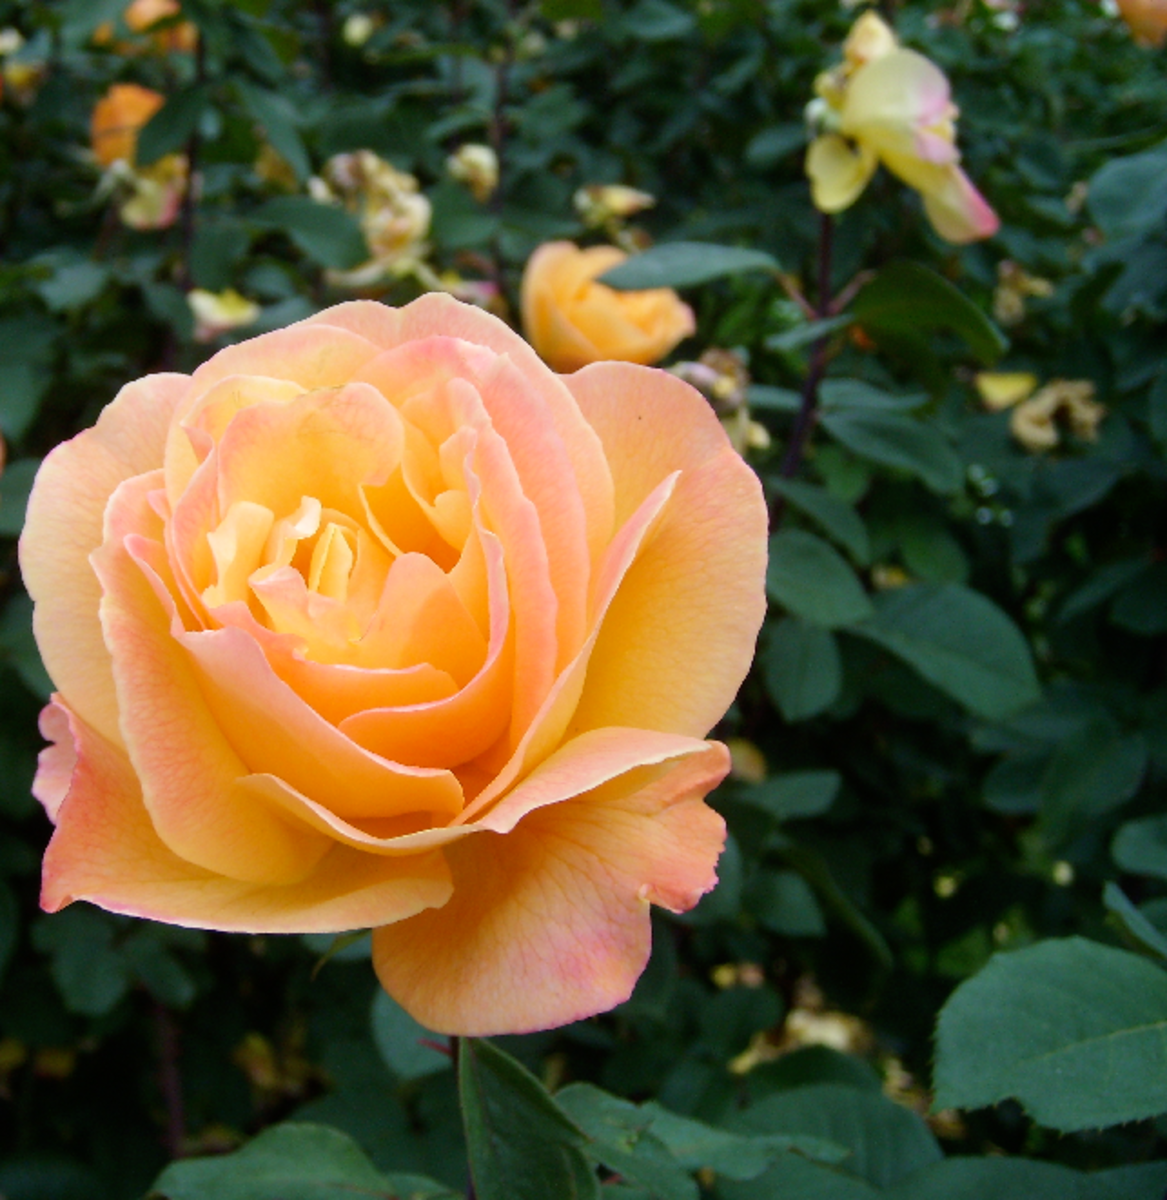 Peach Rose in Garden Picture